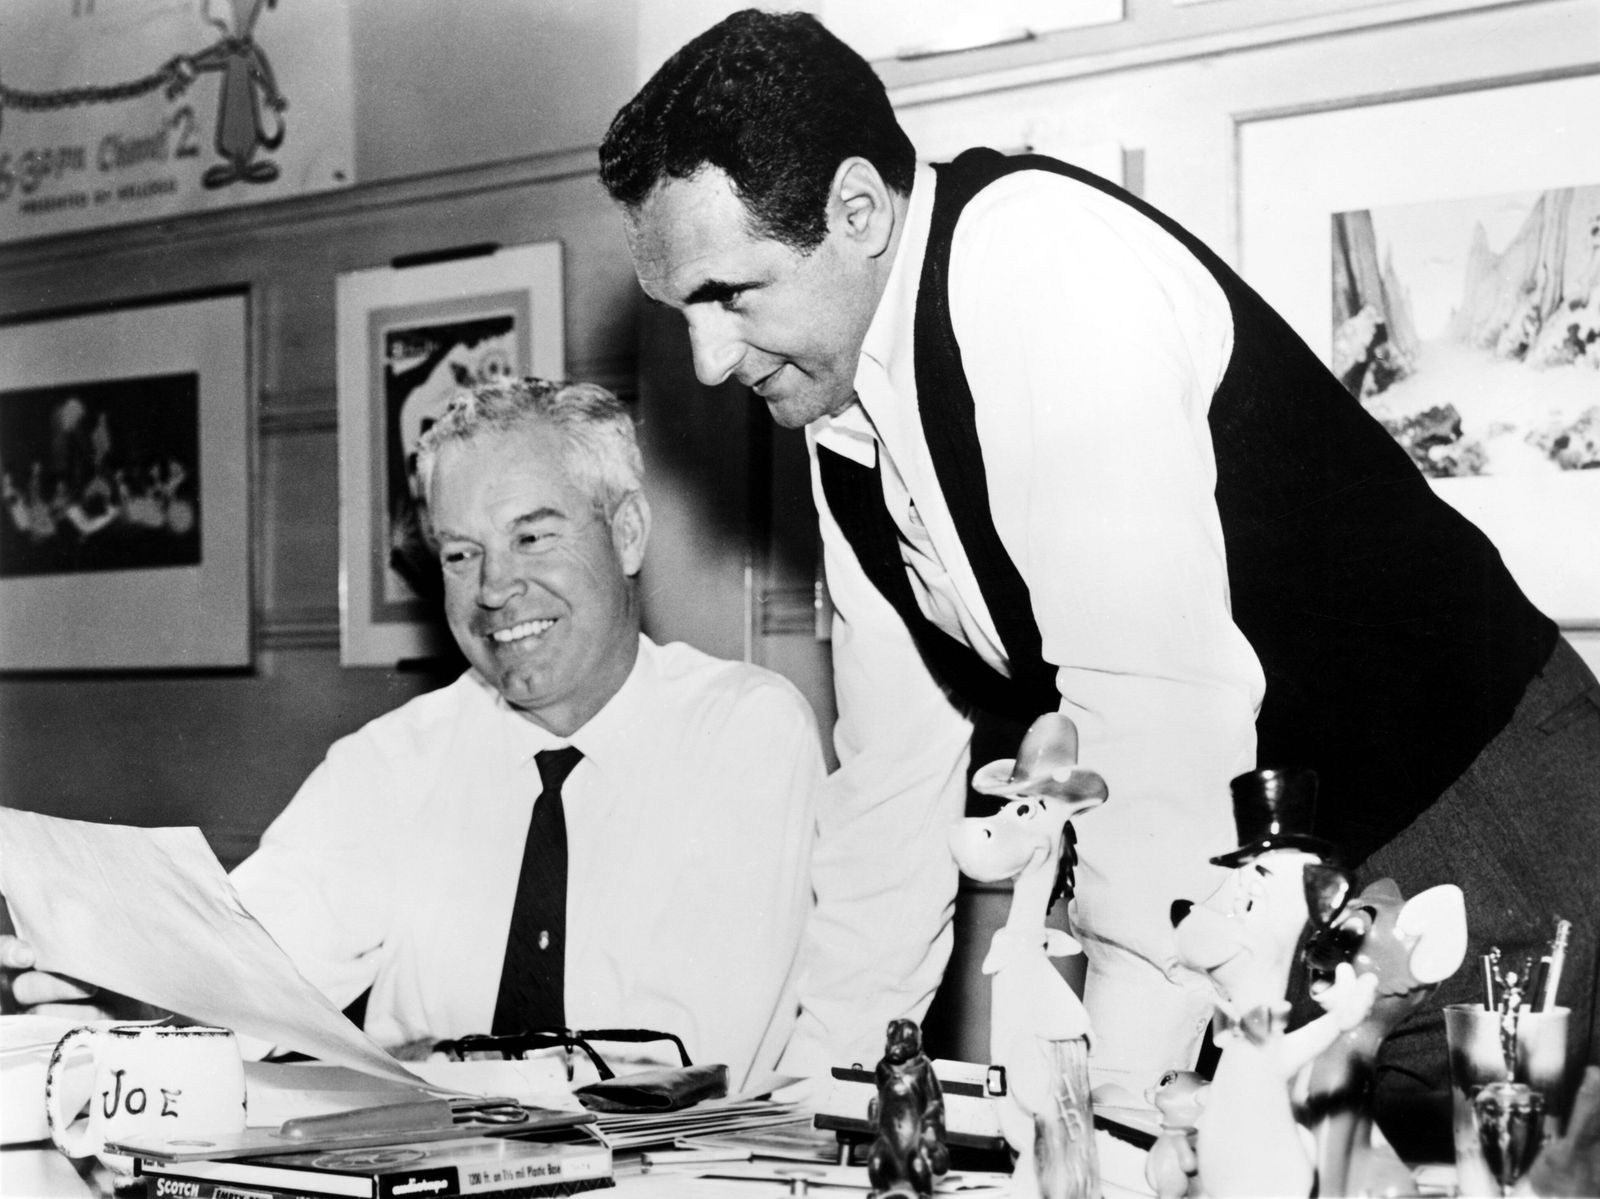 William Hanna and Joseph Barbera, in their office, going over the script for debut of THE FLINTSTONES, 9/30/1960. Courte